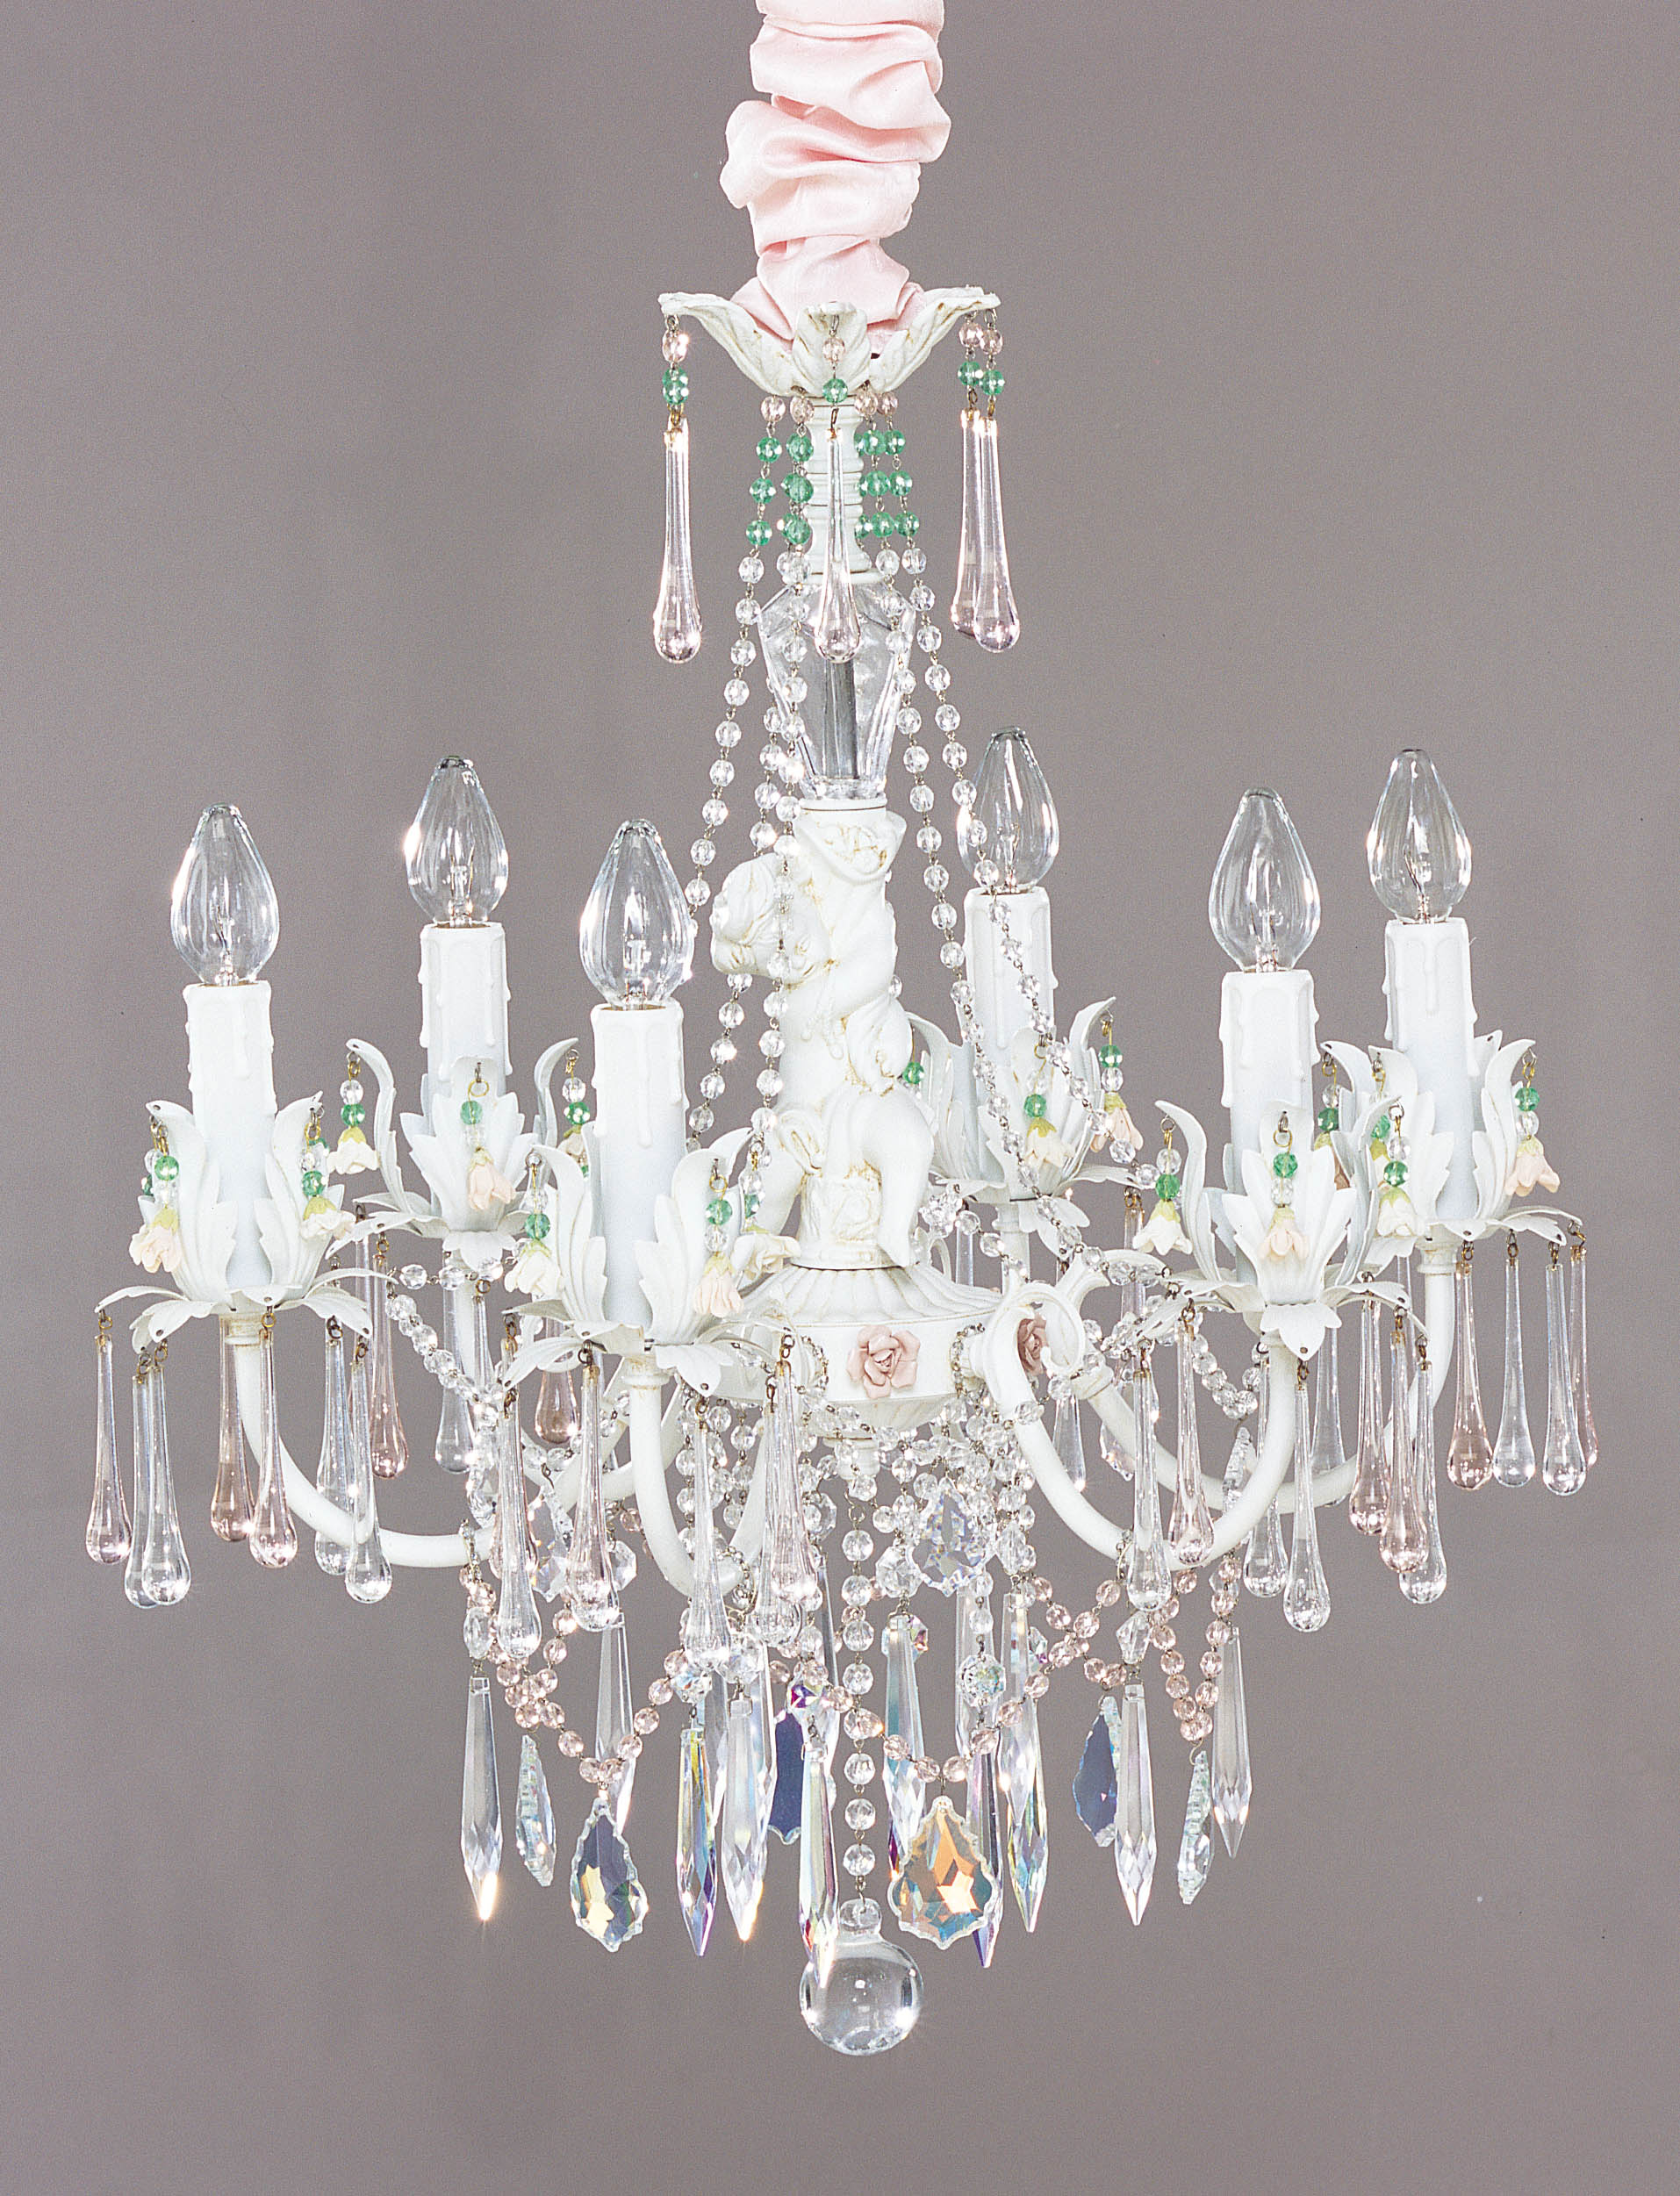 I Lite 4 U Shabby Chic style Mini chandeliers & Lighting